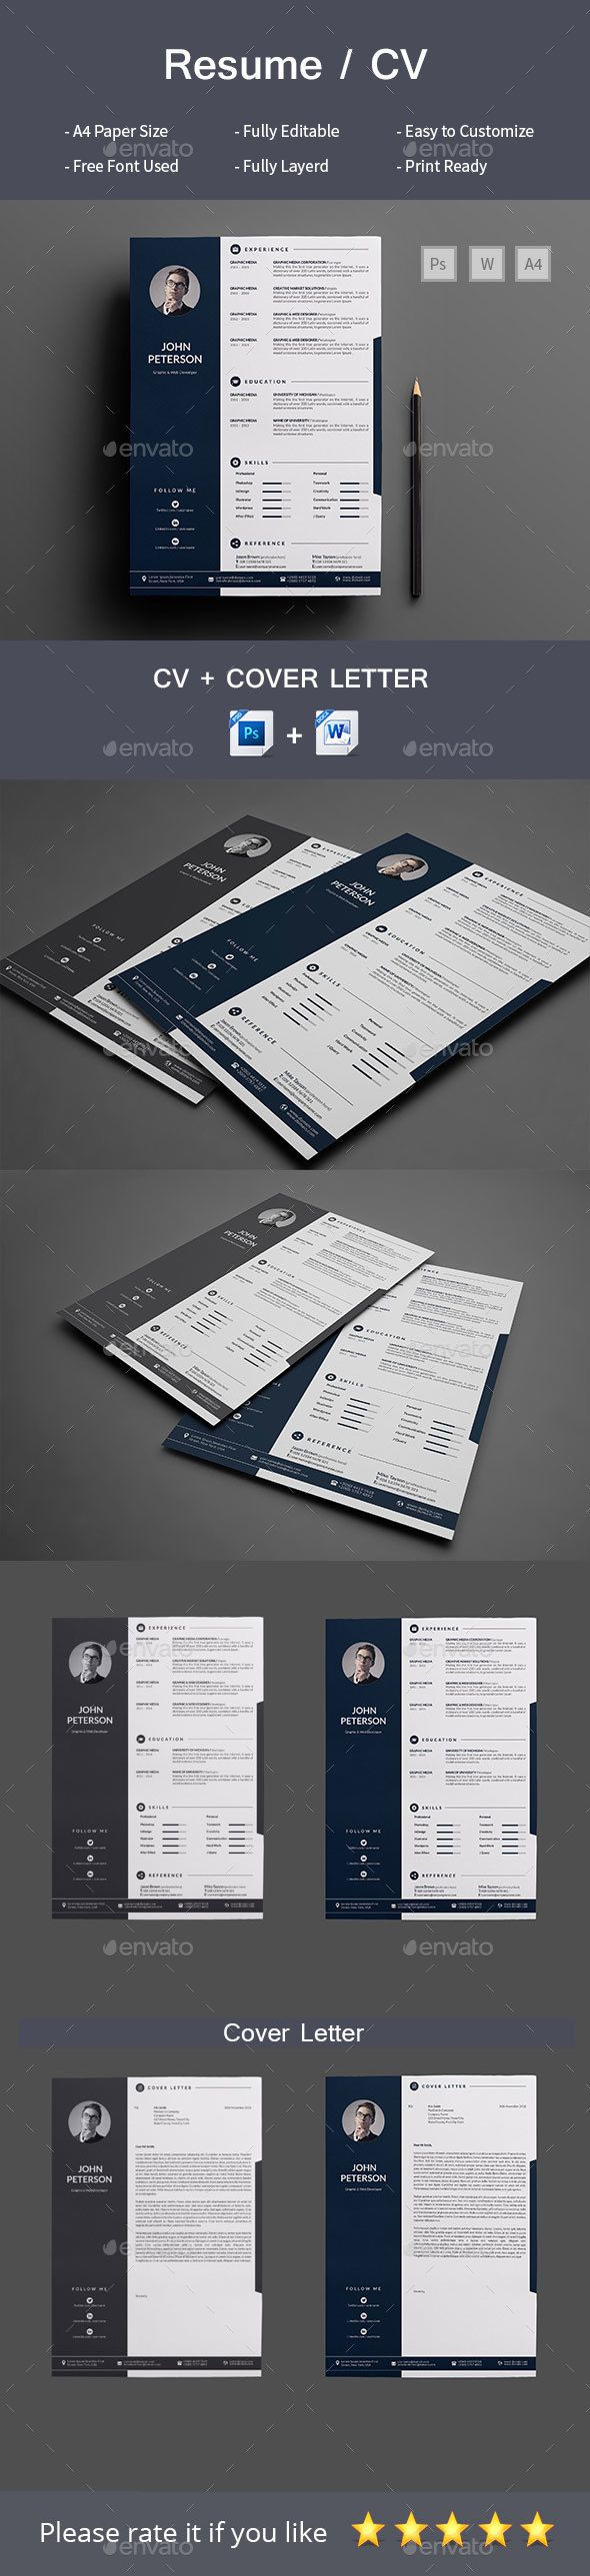 cv and resume format%0A Resume CoverLetter